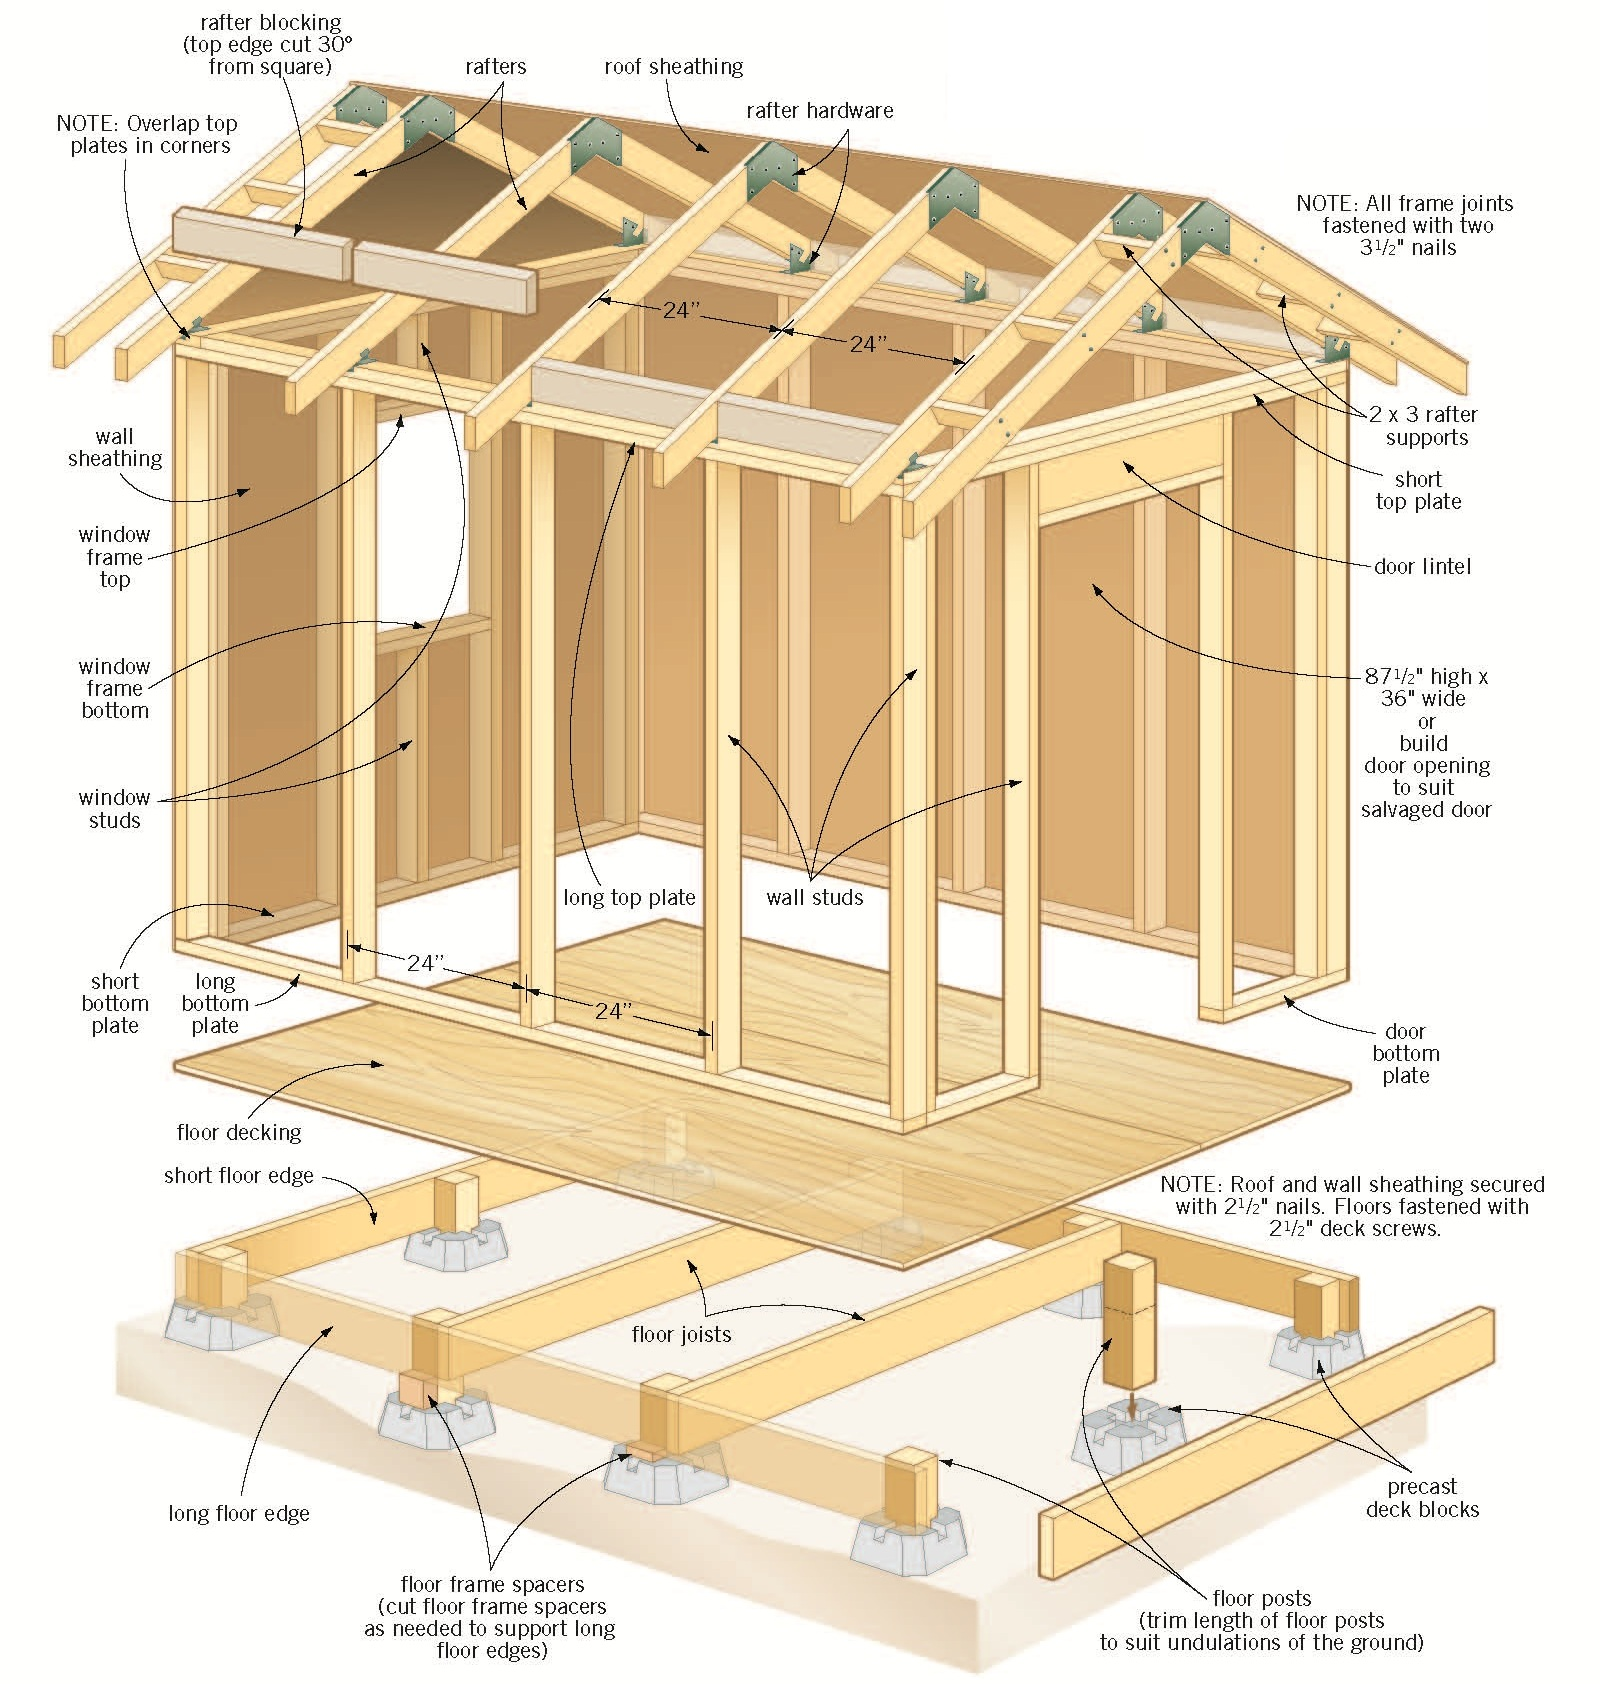 Build Your Own Garden Shed Plans Shed Blueprints : garden shed plans 1 from shedsblueprints.com size 1600 x 1684 jpeg 594kB